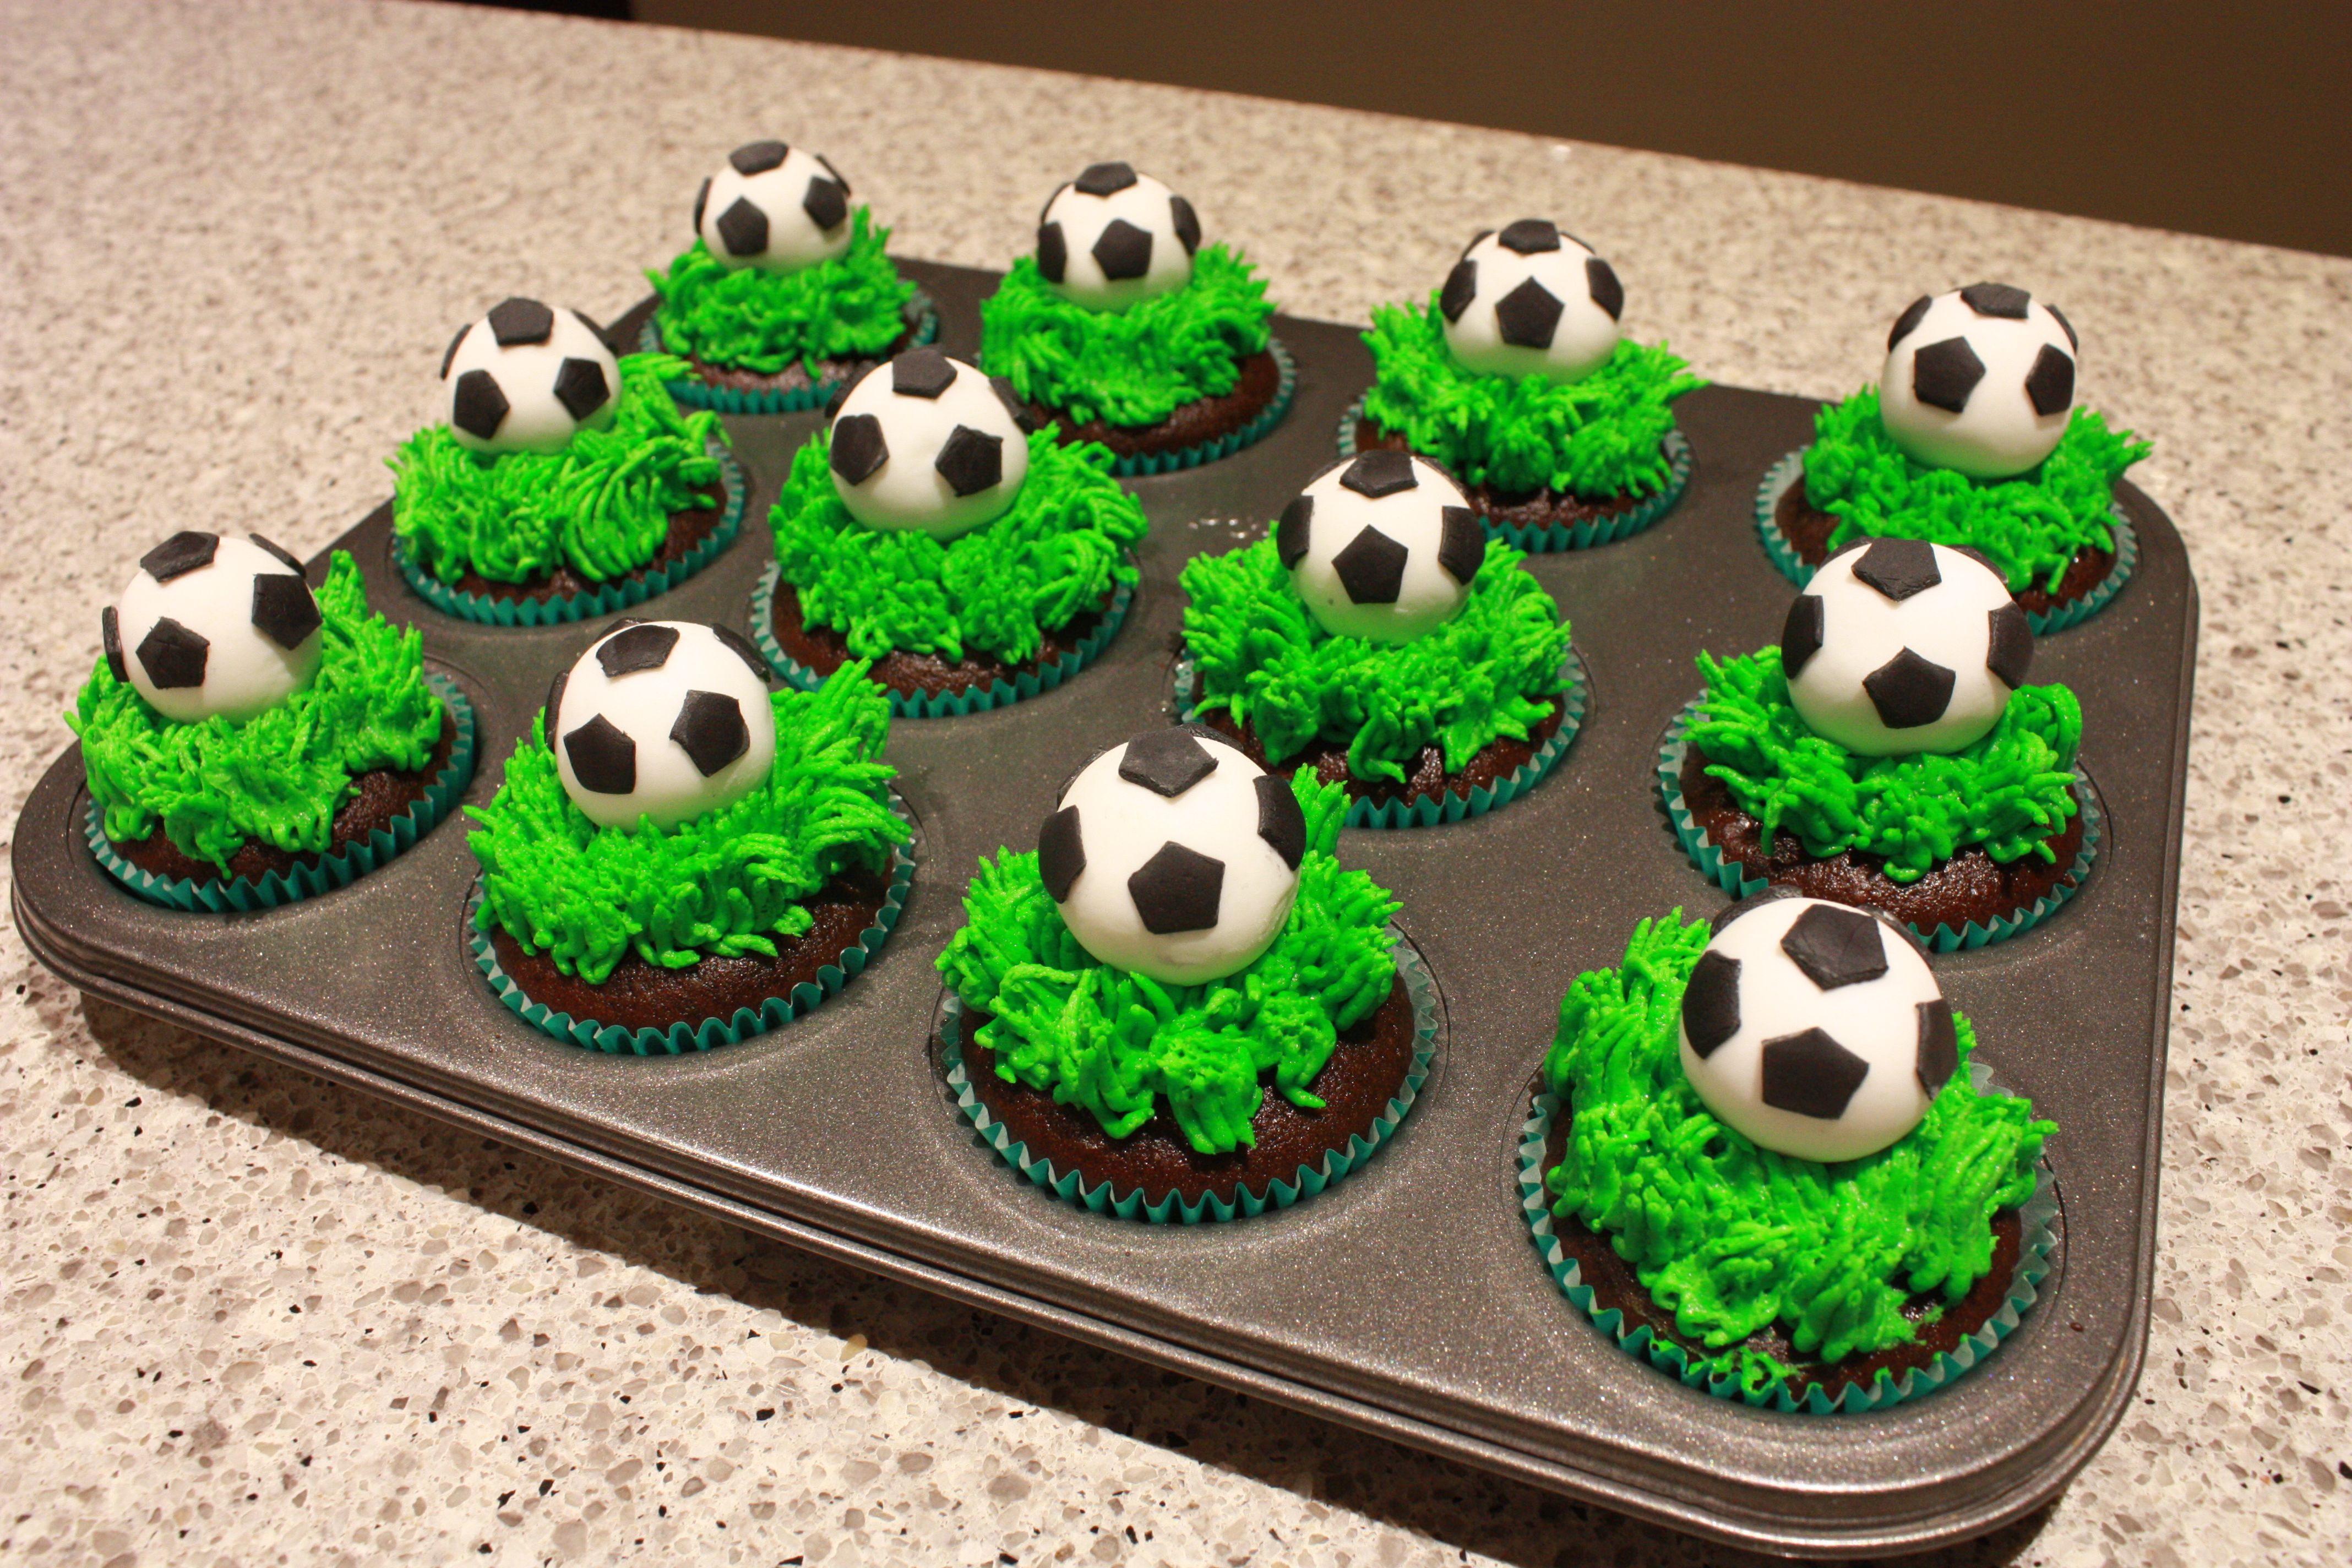 Soccer Ball Cupcakes Chocolate Cupcakes With Buttercream Grass And Handmade Fondant Soccer Balls Soccer Ball Cake Soccer Cupcakes Cake Design